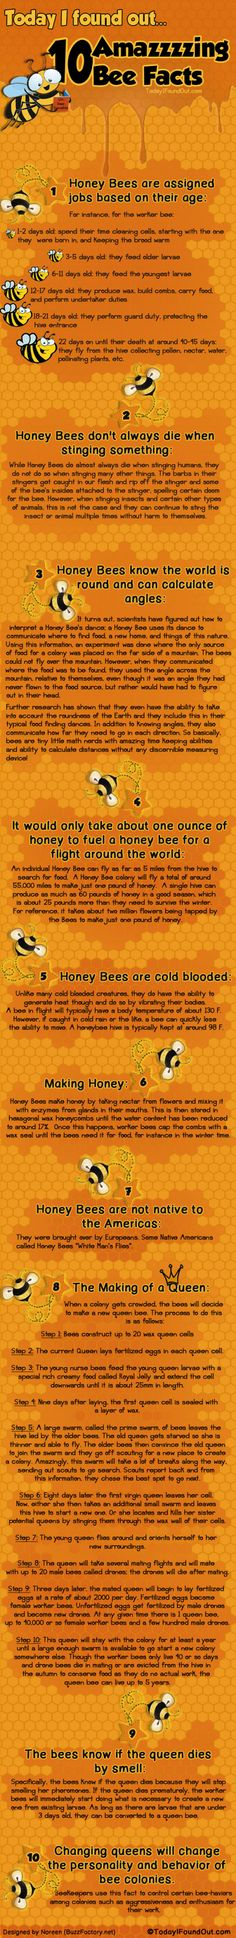 Let we learn some bee facts! Bees are amazing insects with a complex world of their own. Find out more about this amazing world, right now! Click!